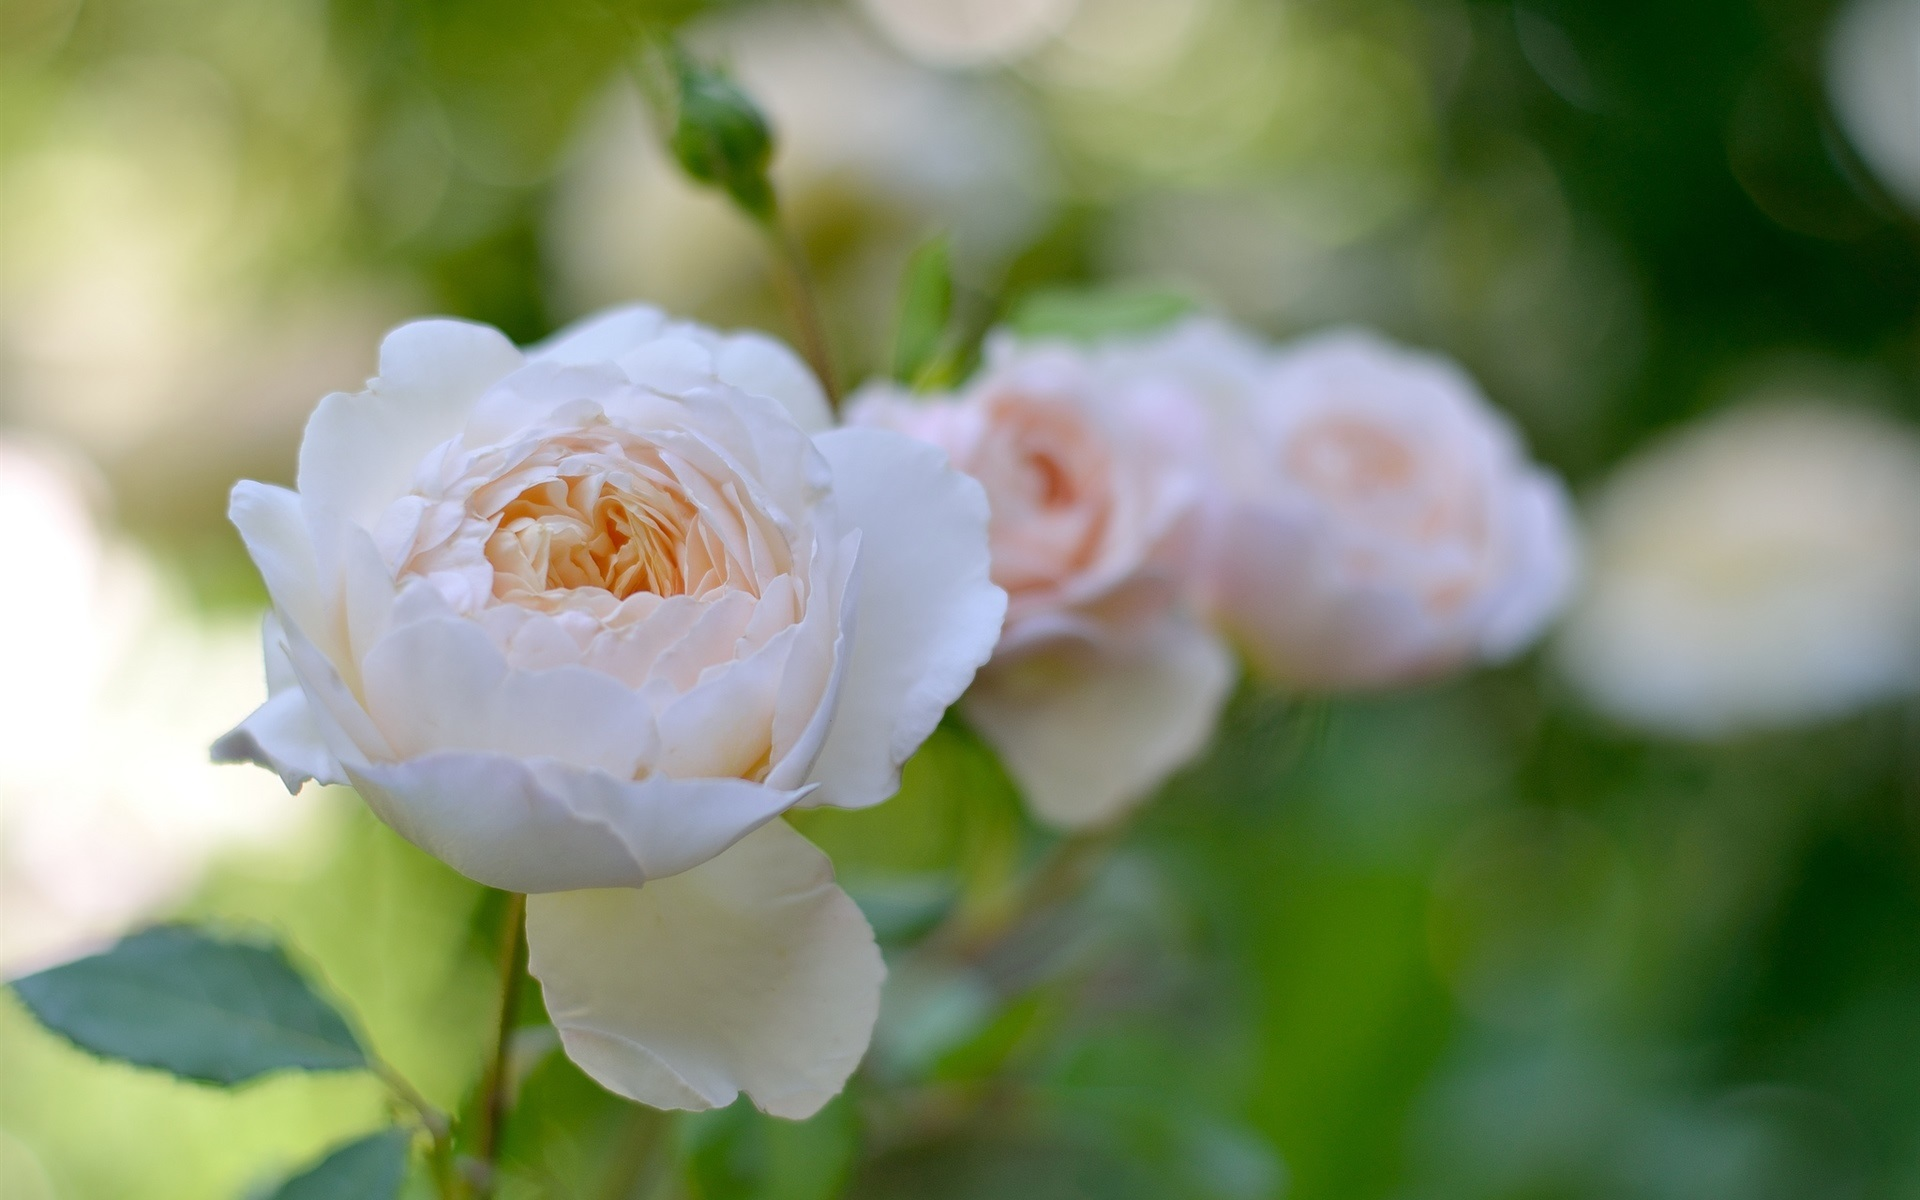 Wallpaper White Rose Flowers Garden 1920x1200 Hd Picture Image